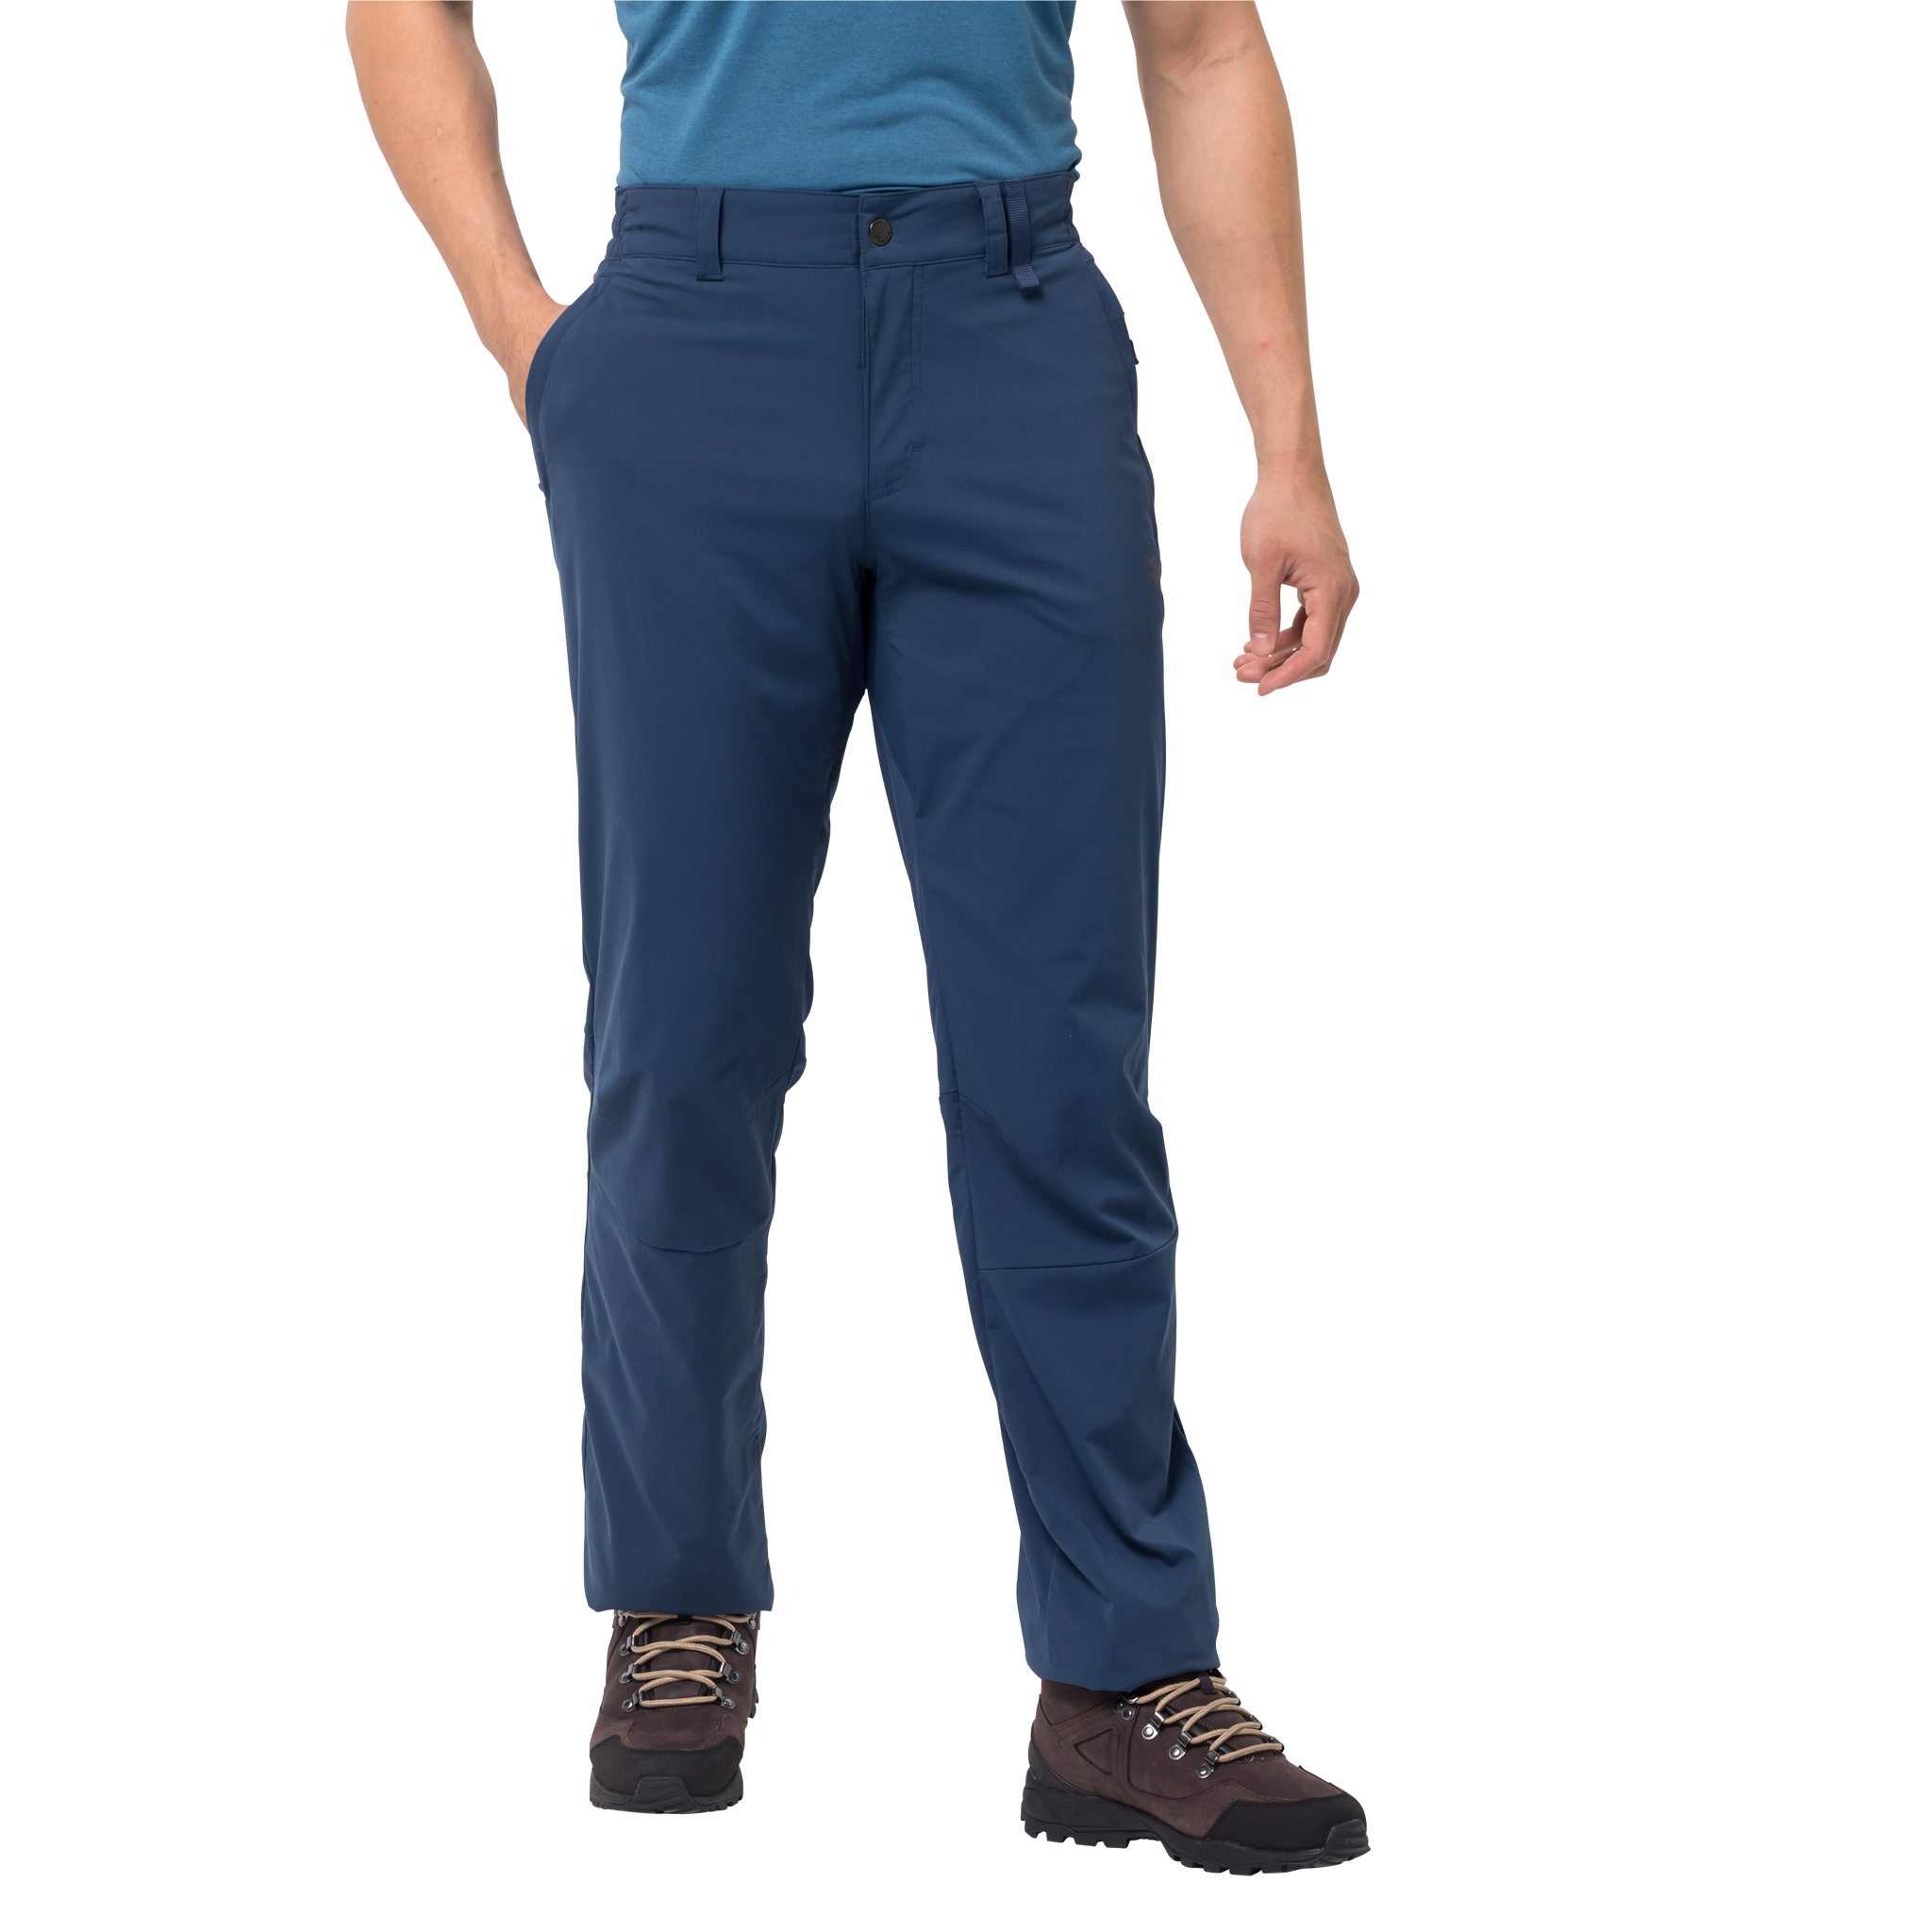 Dark Indigo Lightweight Hiking Pant